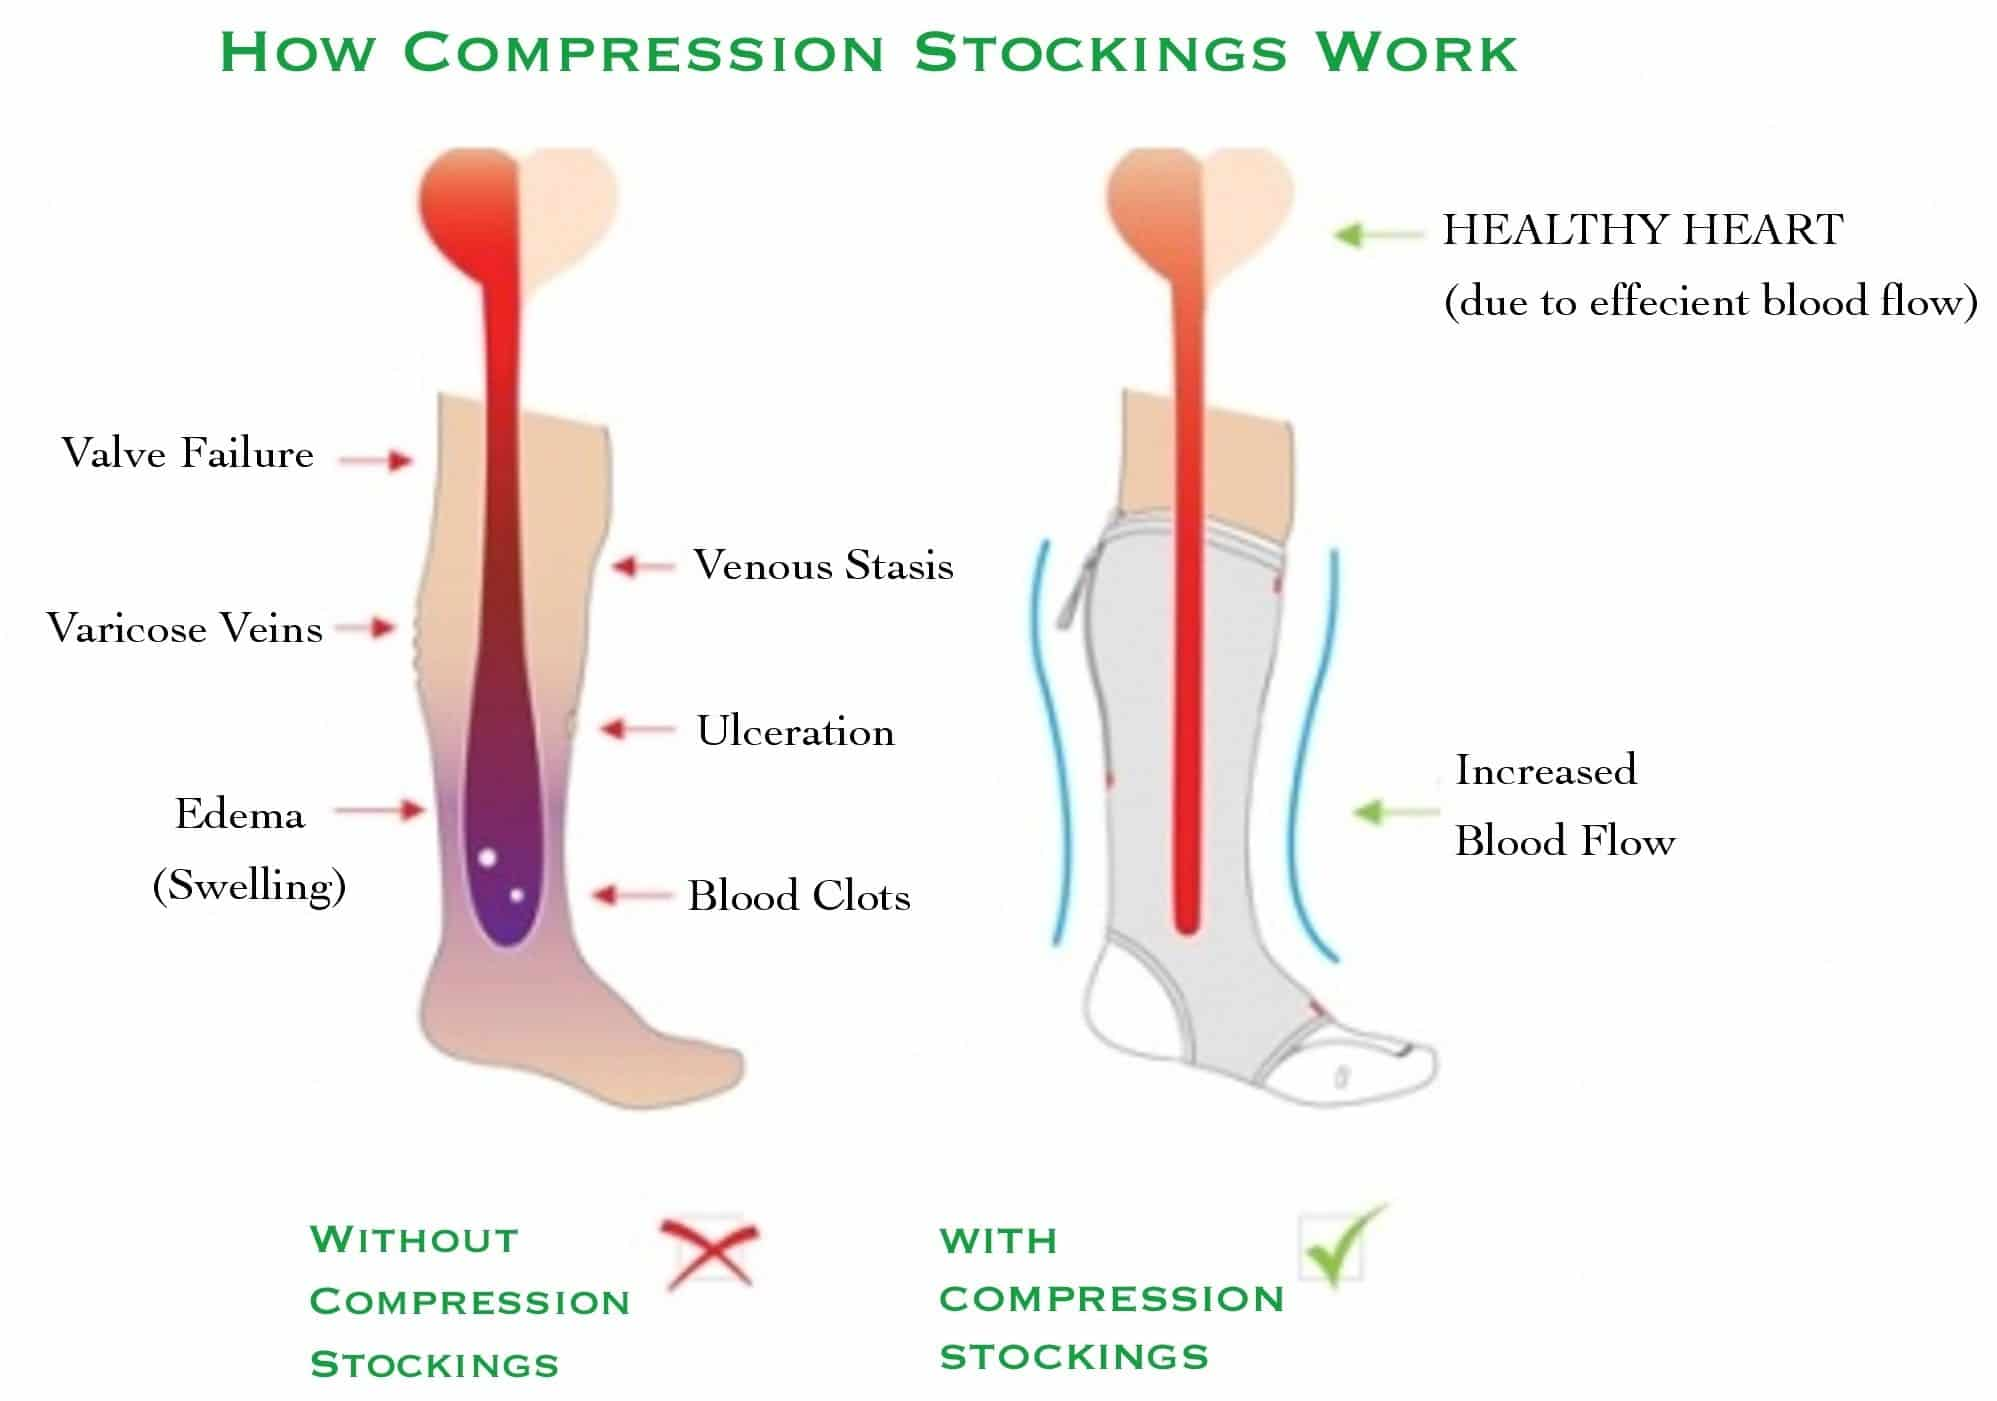 7f2119cfbf The 7 Benefits of Running Compression Socks - Train for a 5K.com